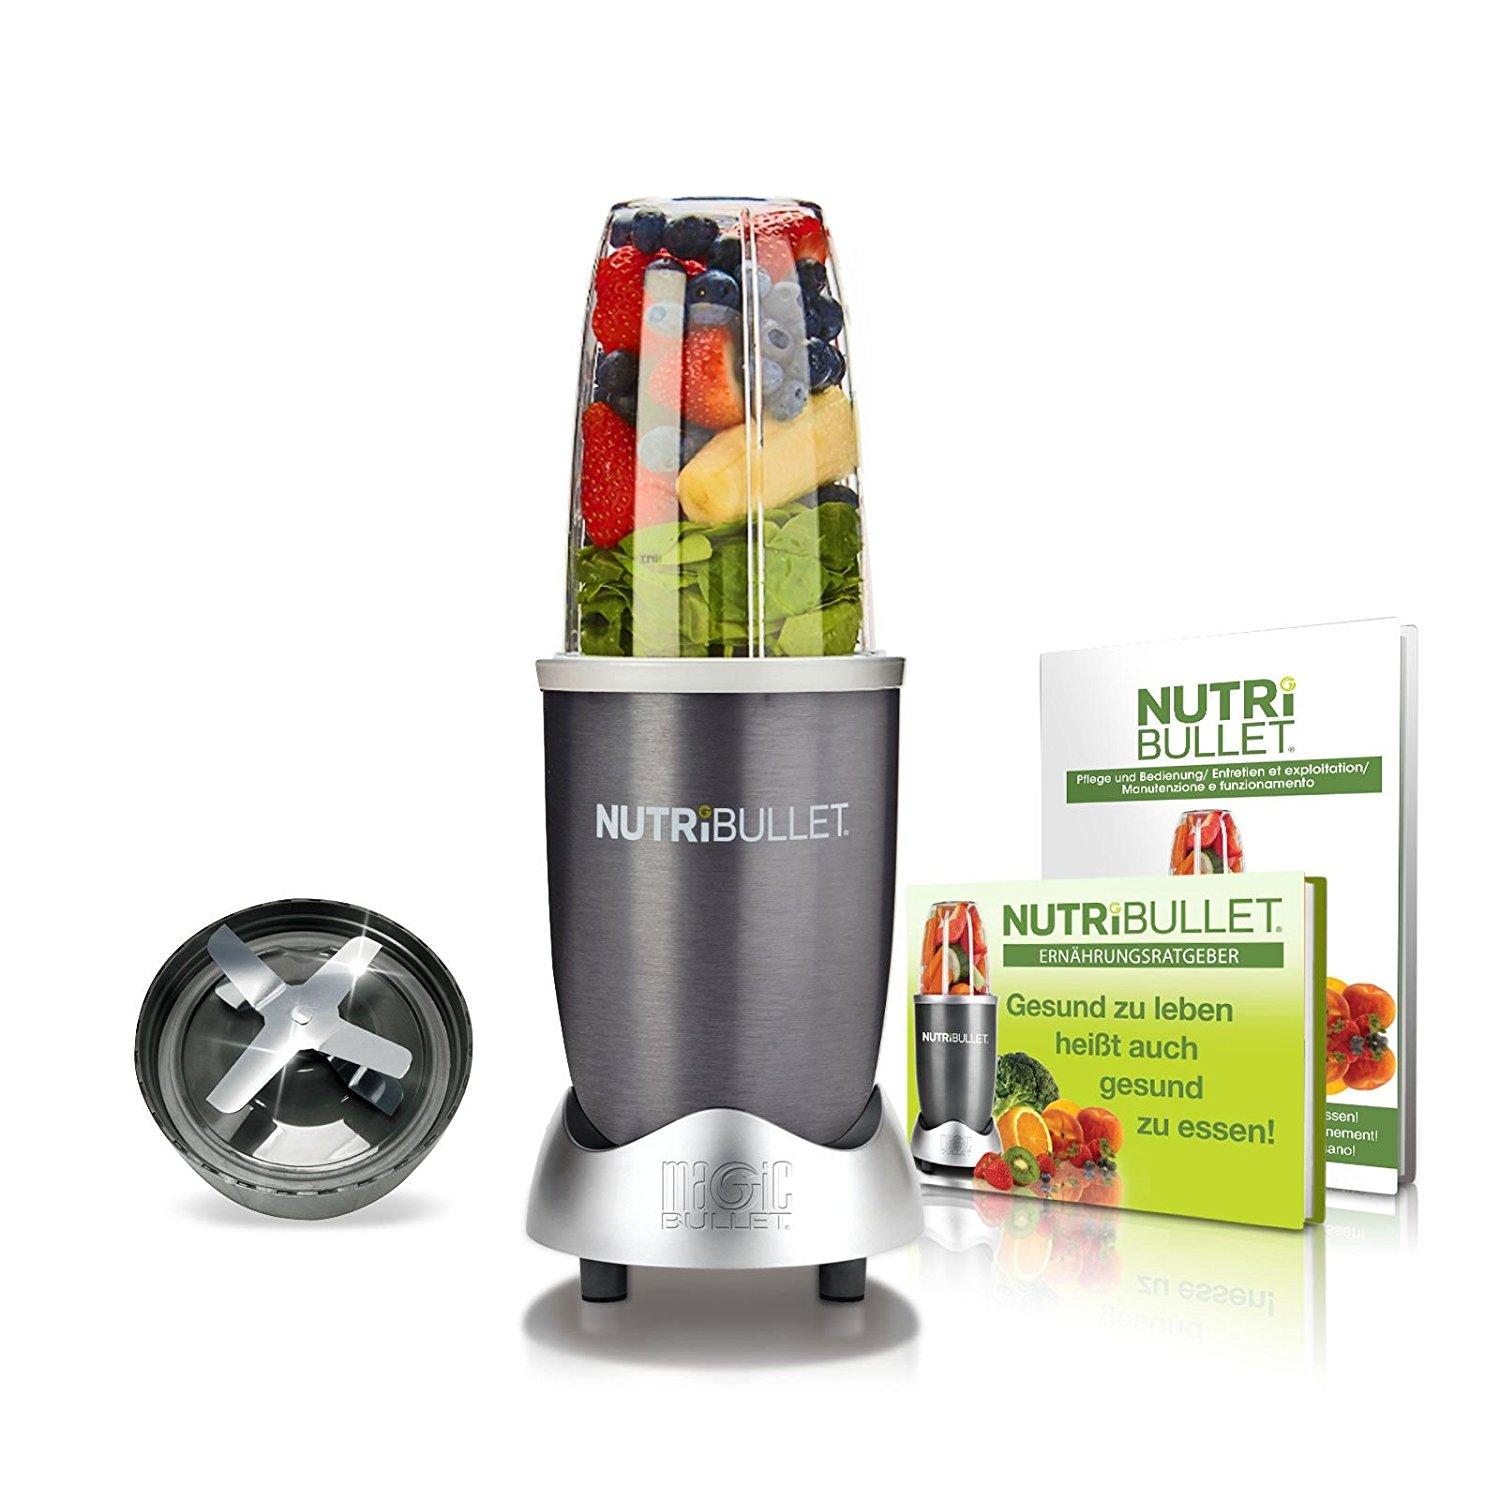 nutribullet test 2017 der smoothie maker der extraklasse. Black Bedroom Furniture Sets. Home Design Ideas